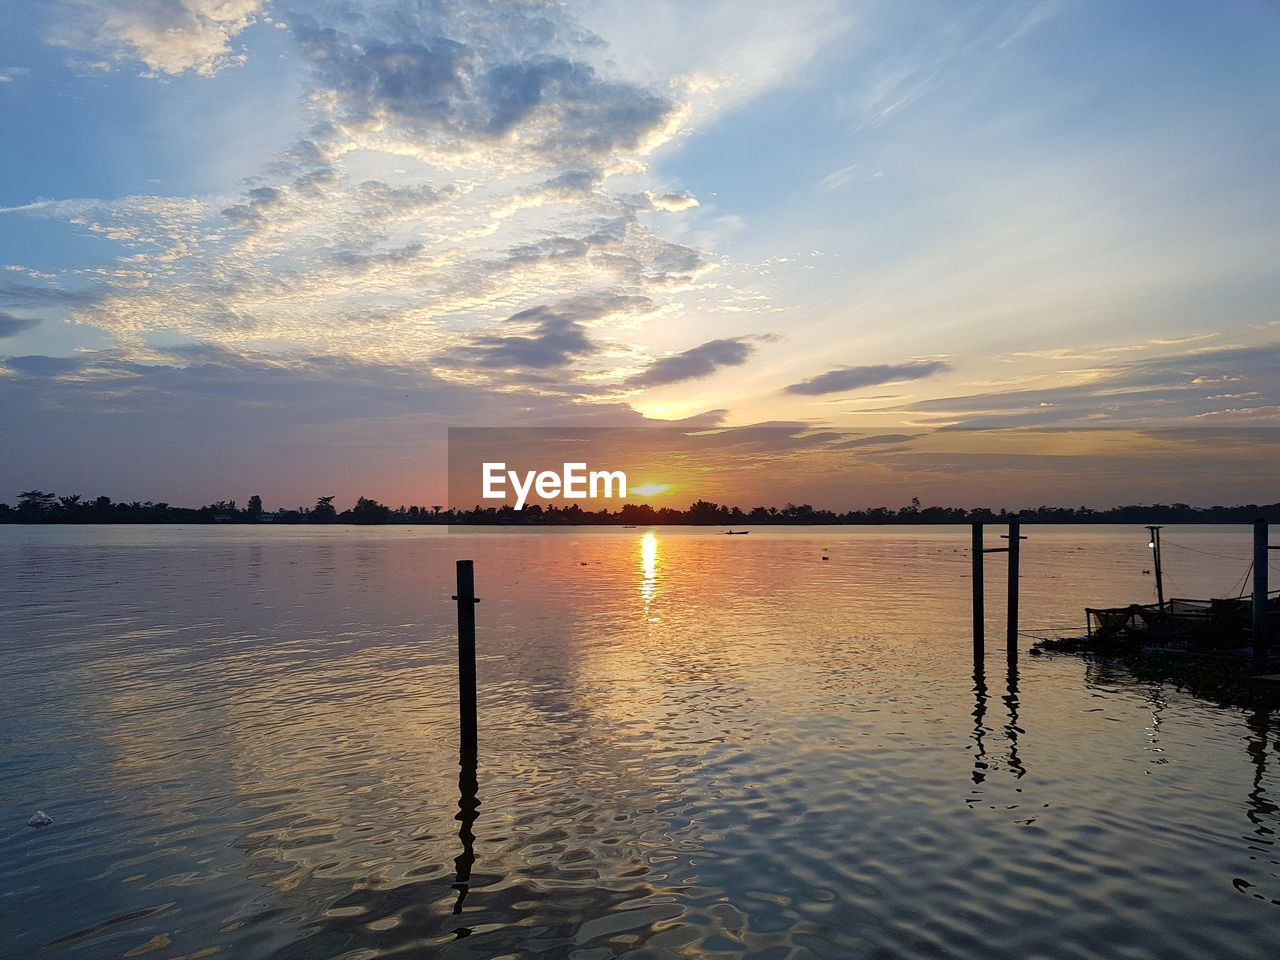 sunset, water, beauty in nature, reflection, sky, scenics, tranquil scene, tranquility, nature, wooden post, cloud - sky, no people, lake, waterfront, outdoors, sun, silhouette, day